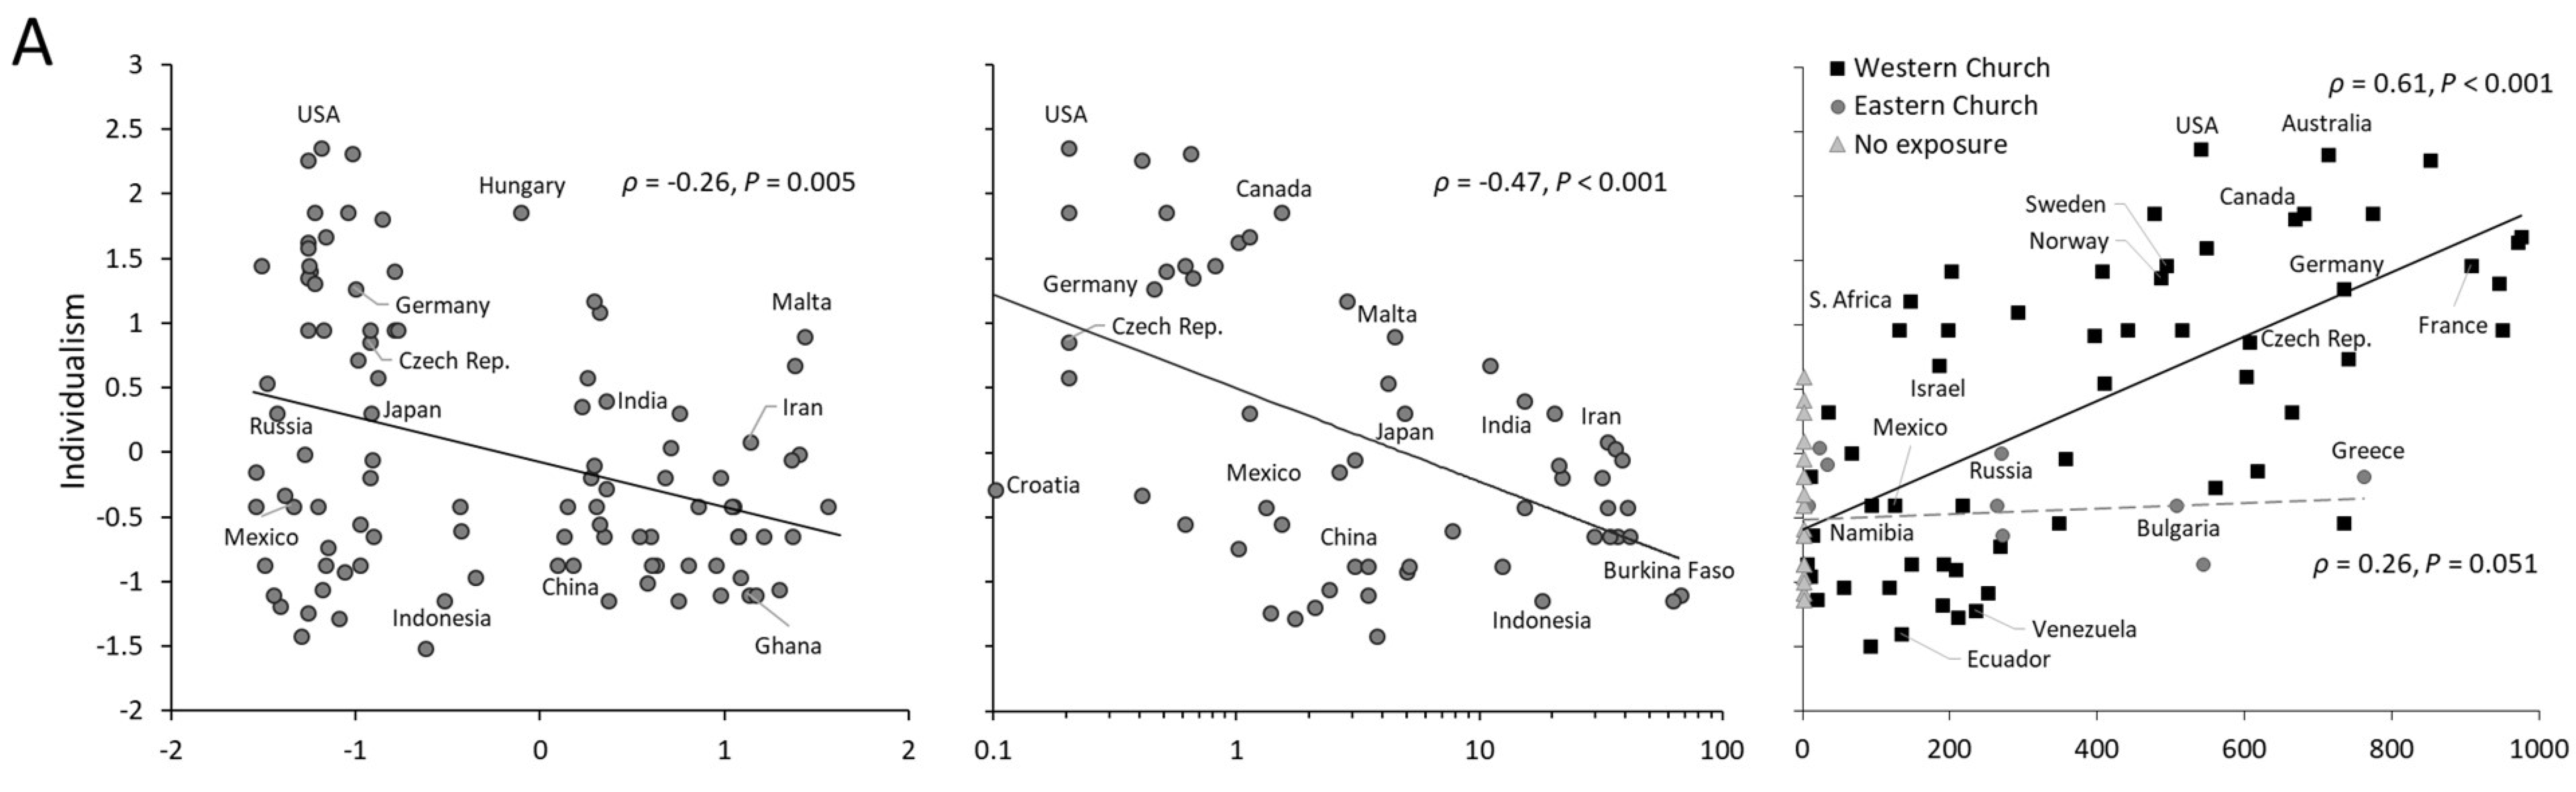 Three graphs showing the correlation of individualism to kinship arrangements and exposure to the Catholic Church